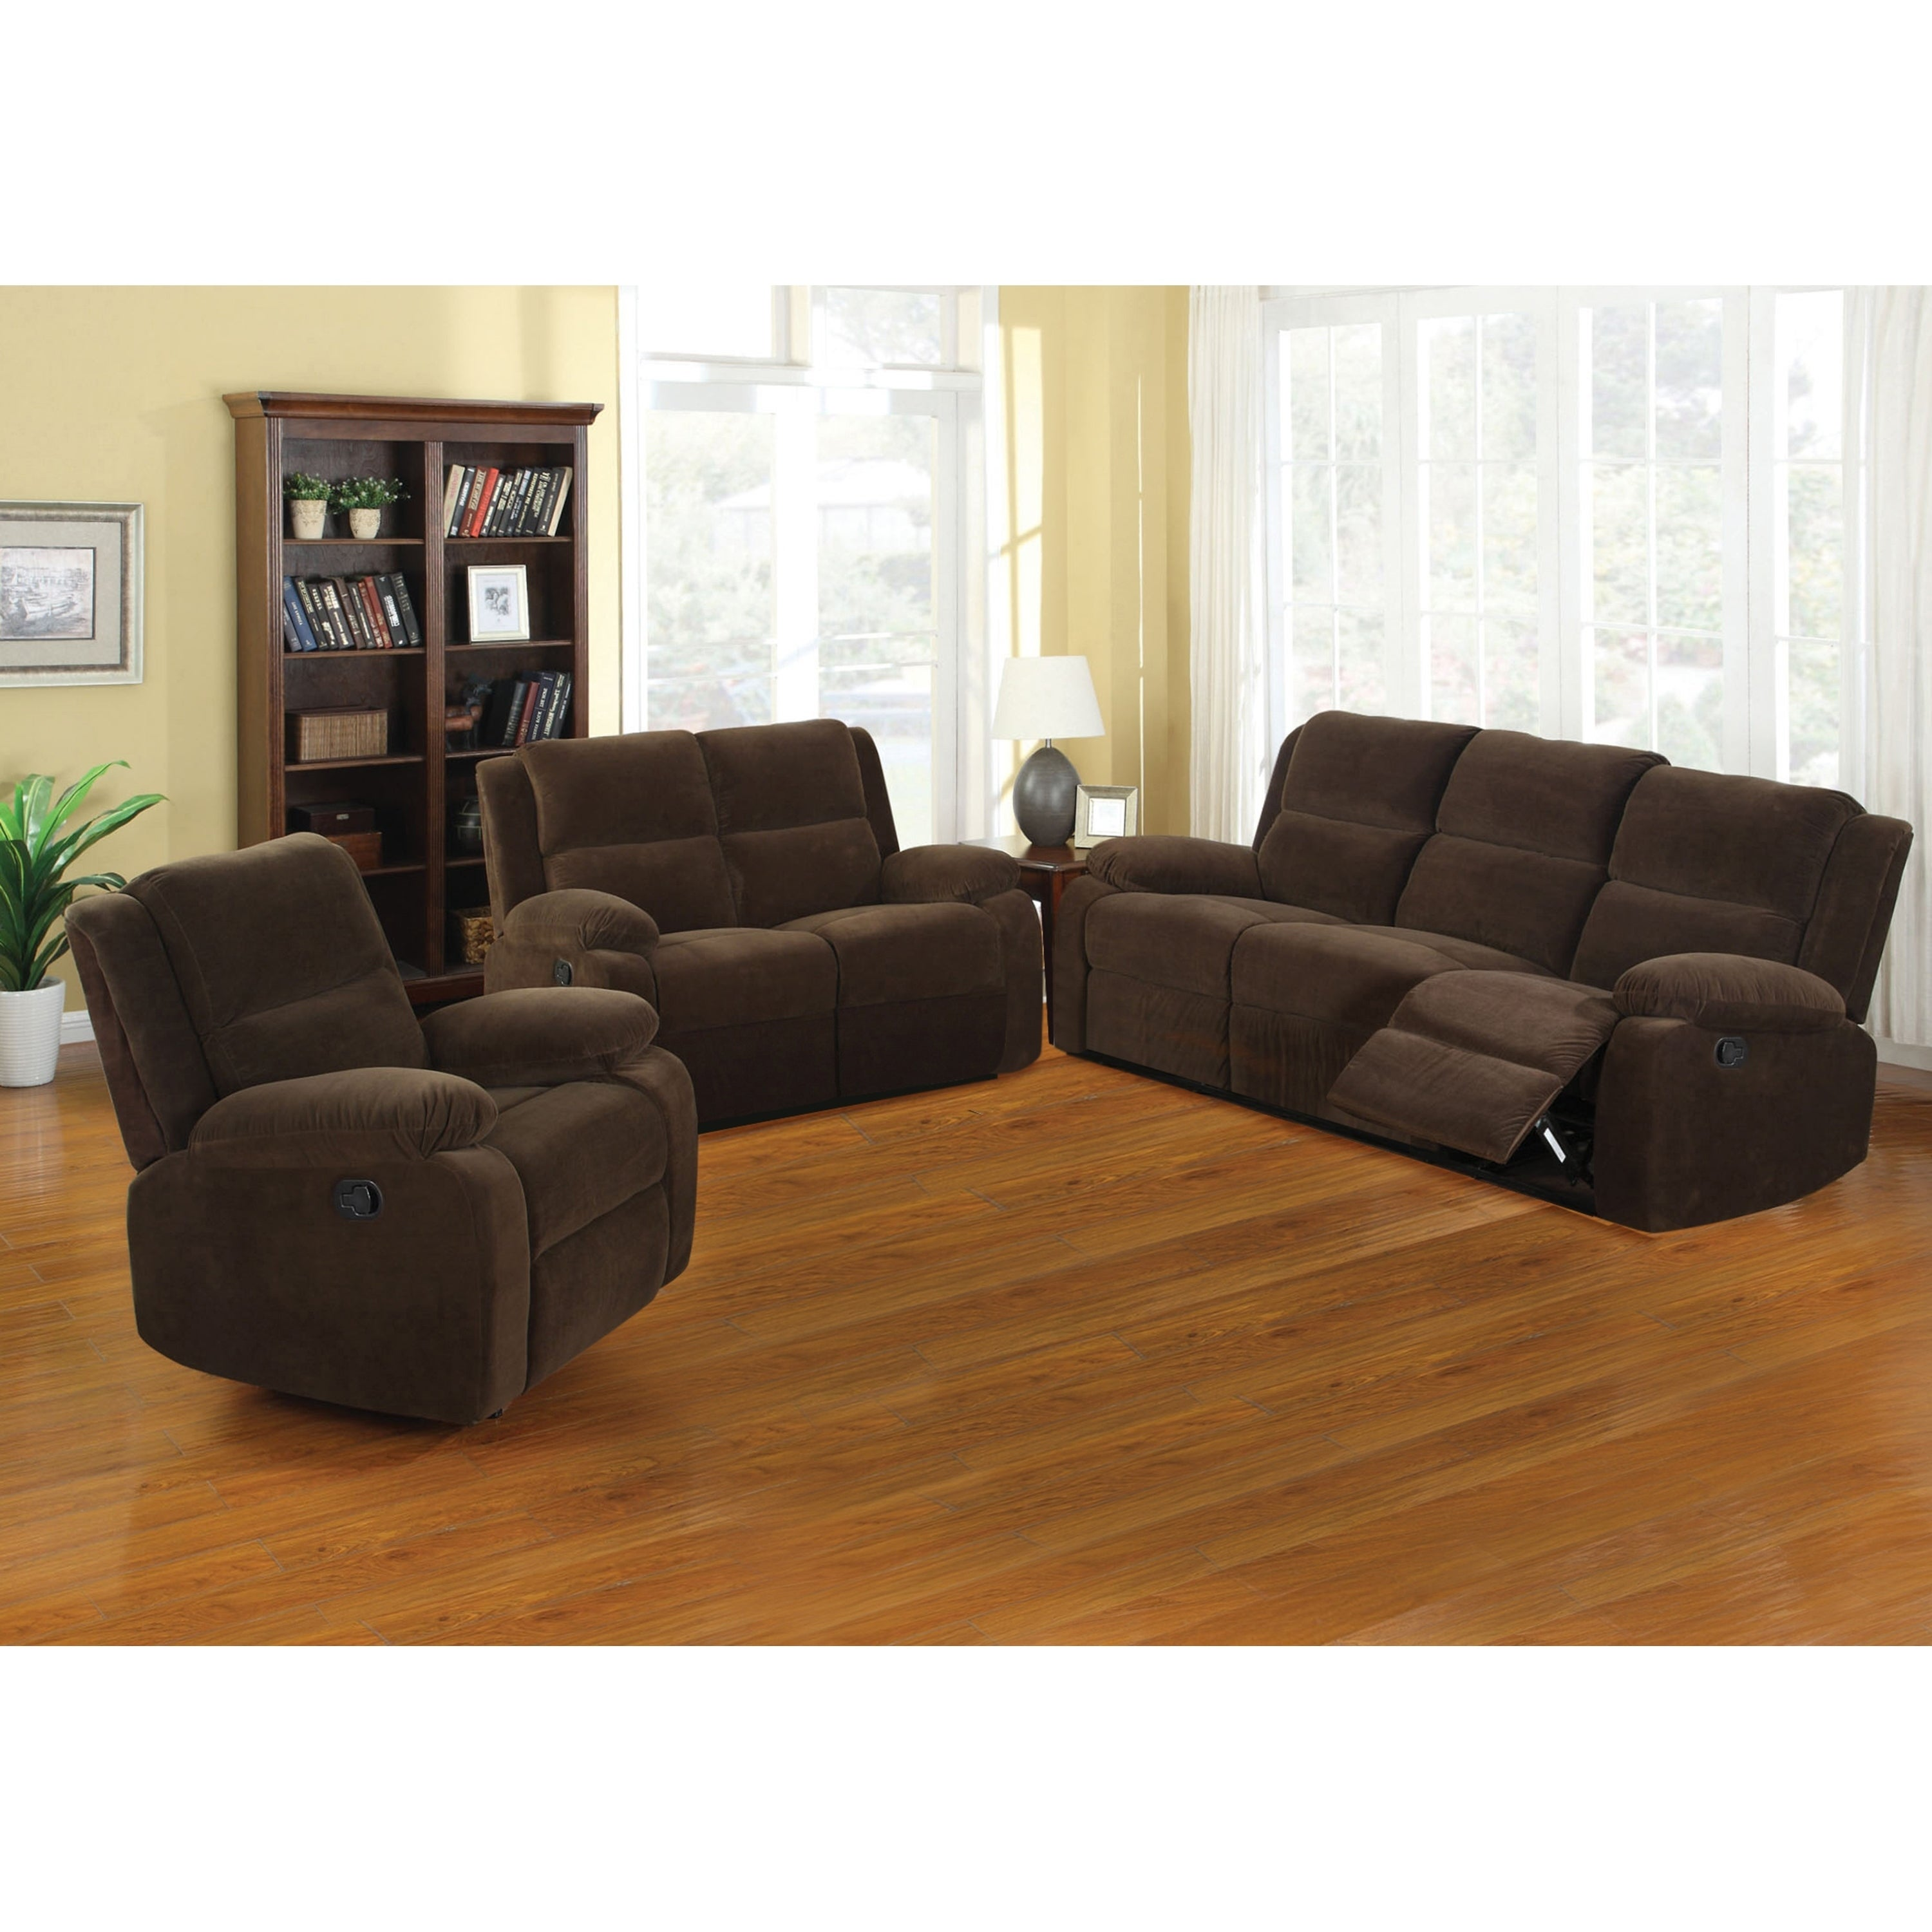 America Lood Transitional Brown 3 Piece